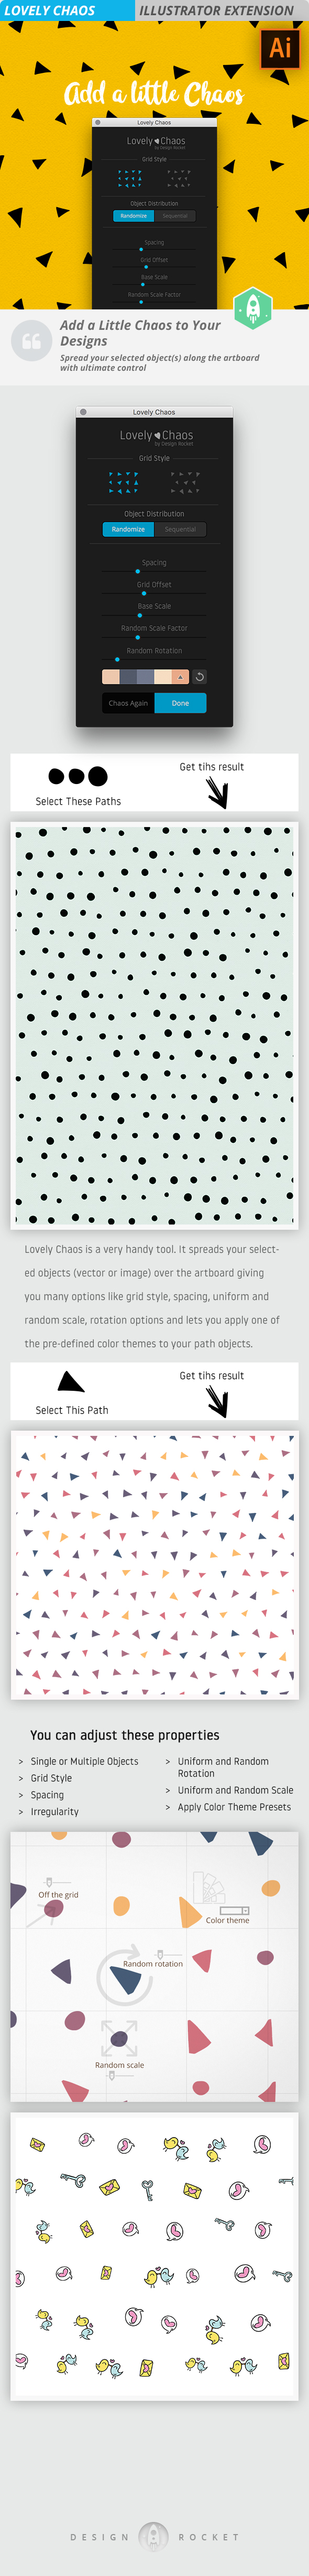 Lovely Chaos - Illustrator Add-ons